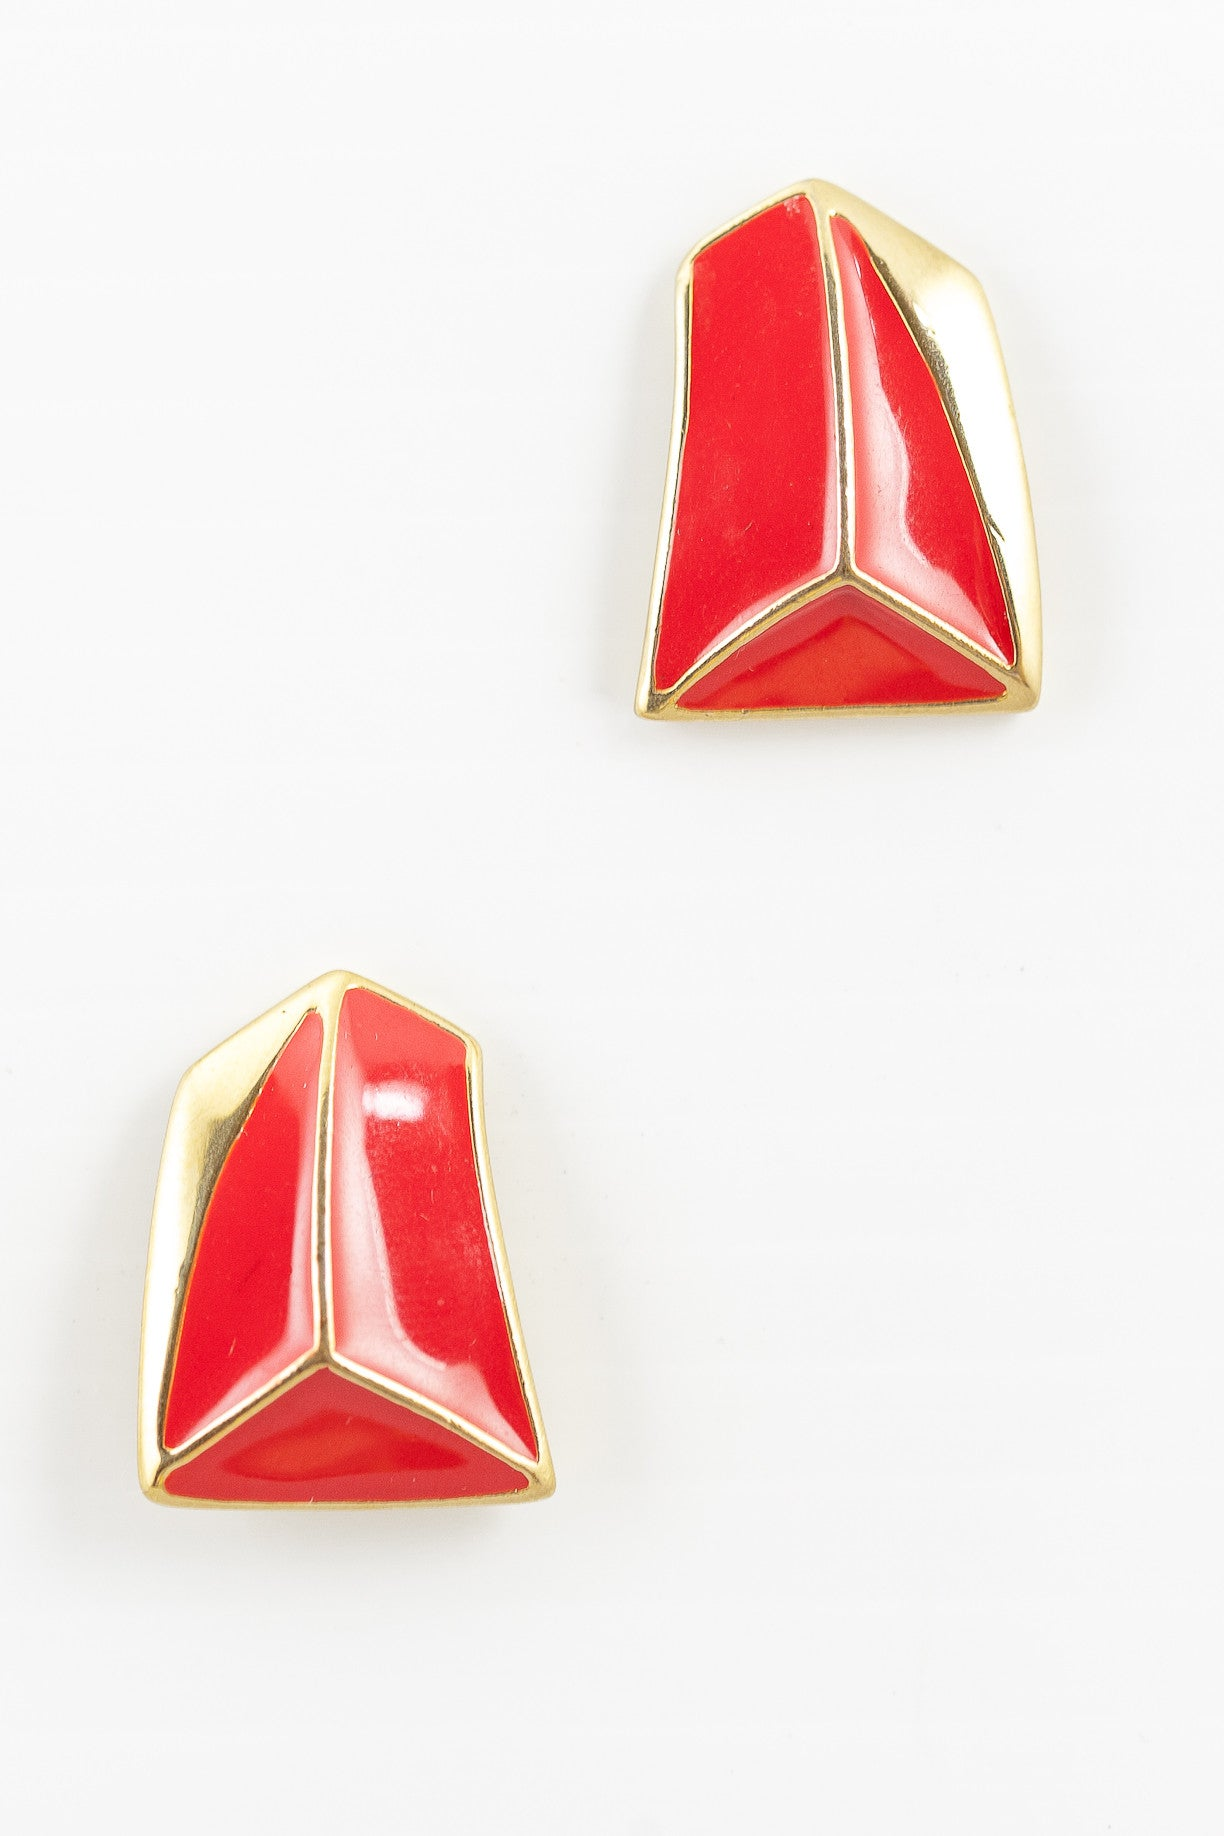 80's__Trifari__Abstract Red Triangle Earrings